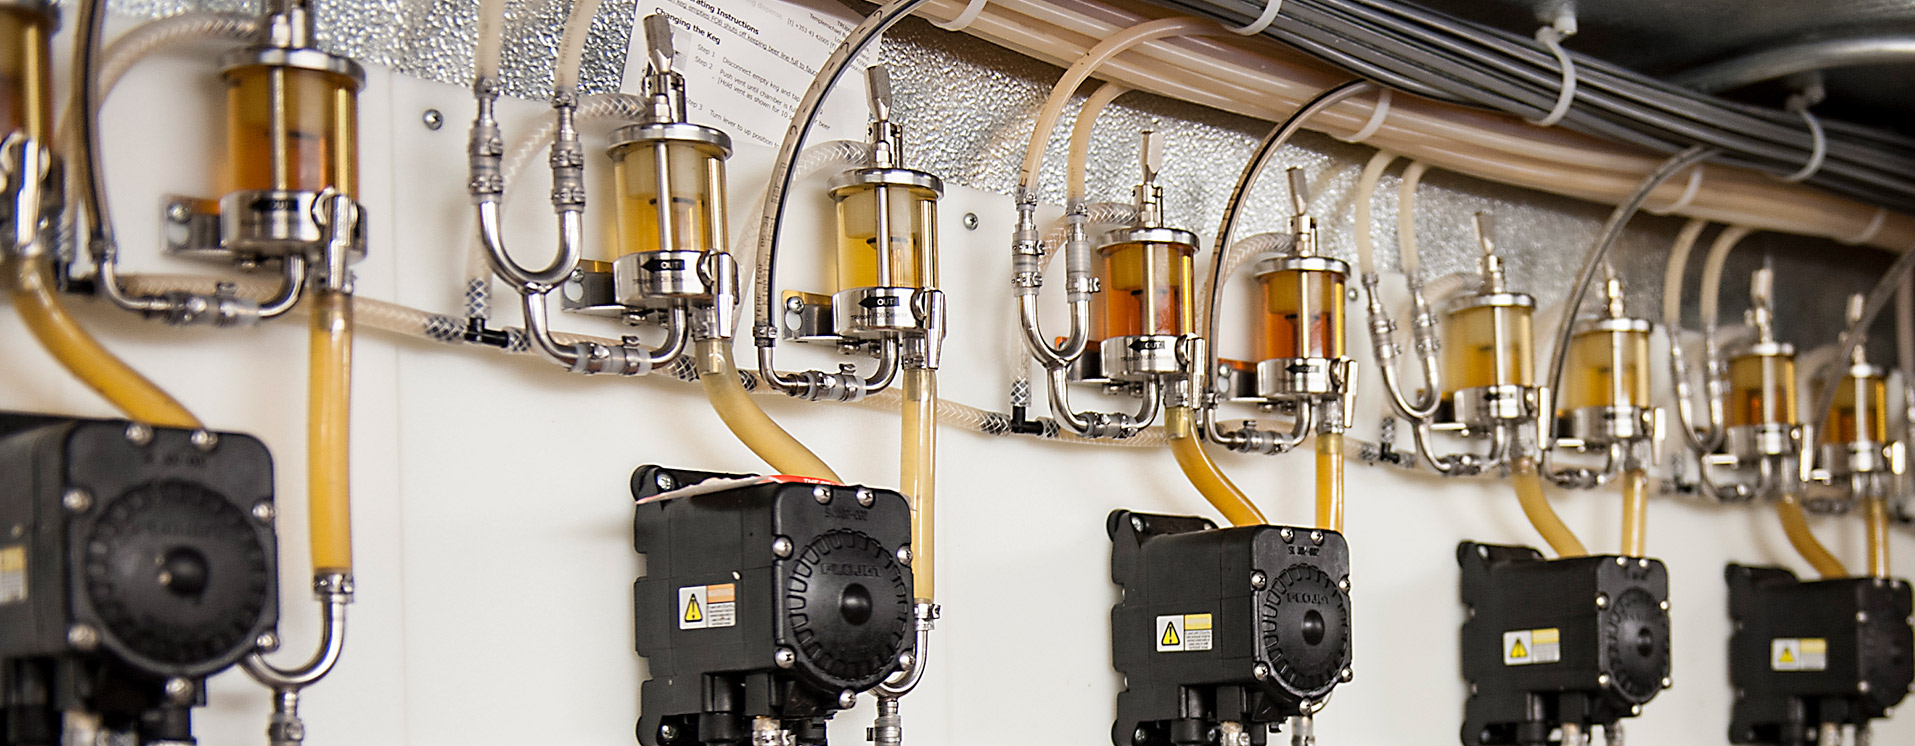 Wall Mounted Beer Tap System Mycoffeepot Org